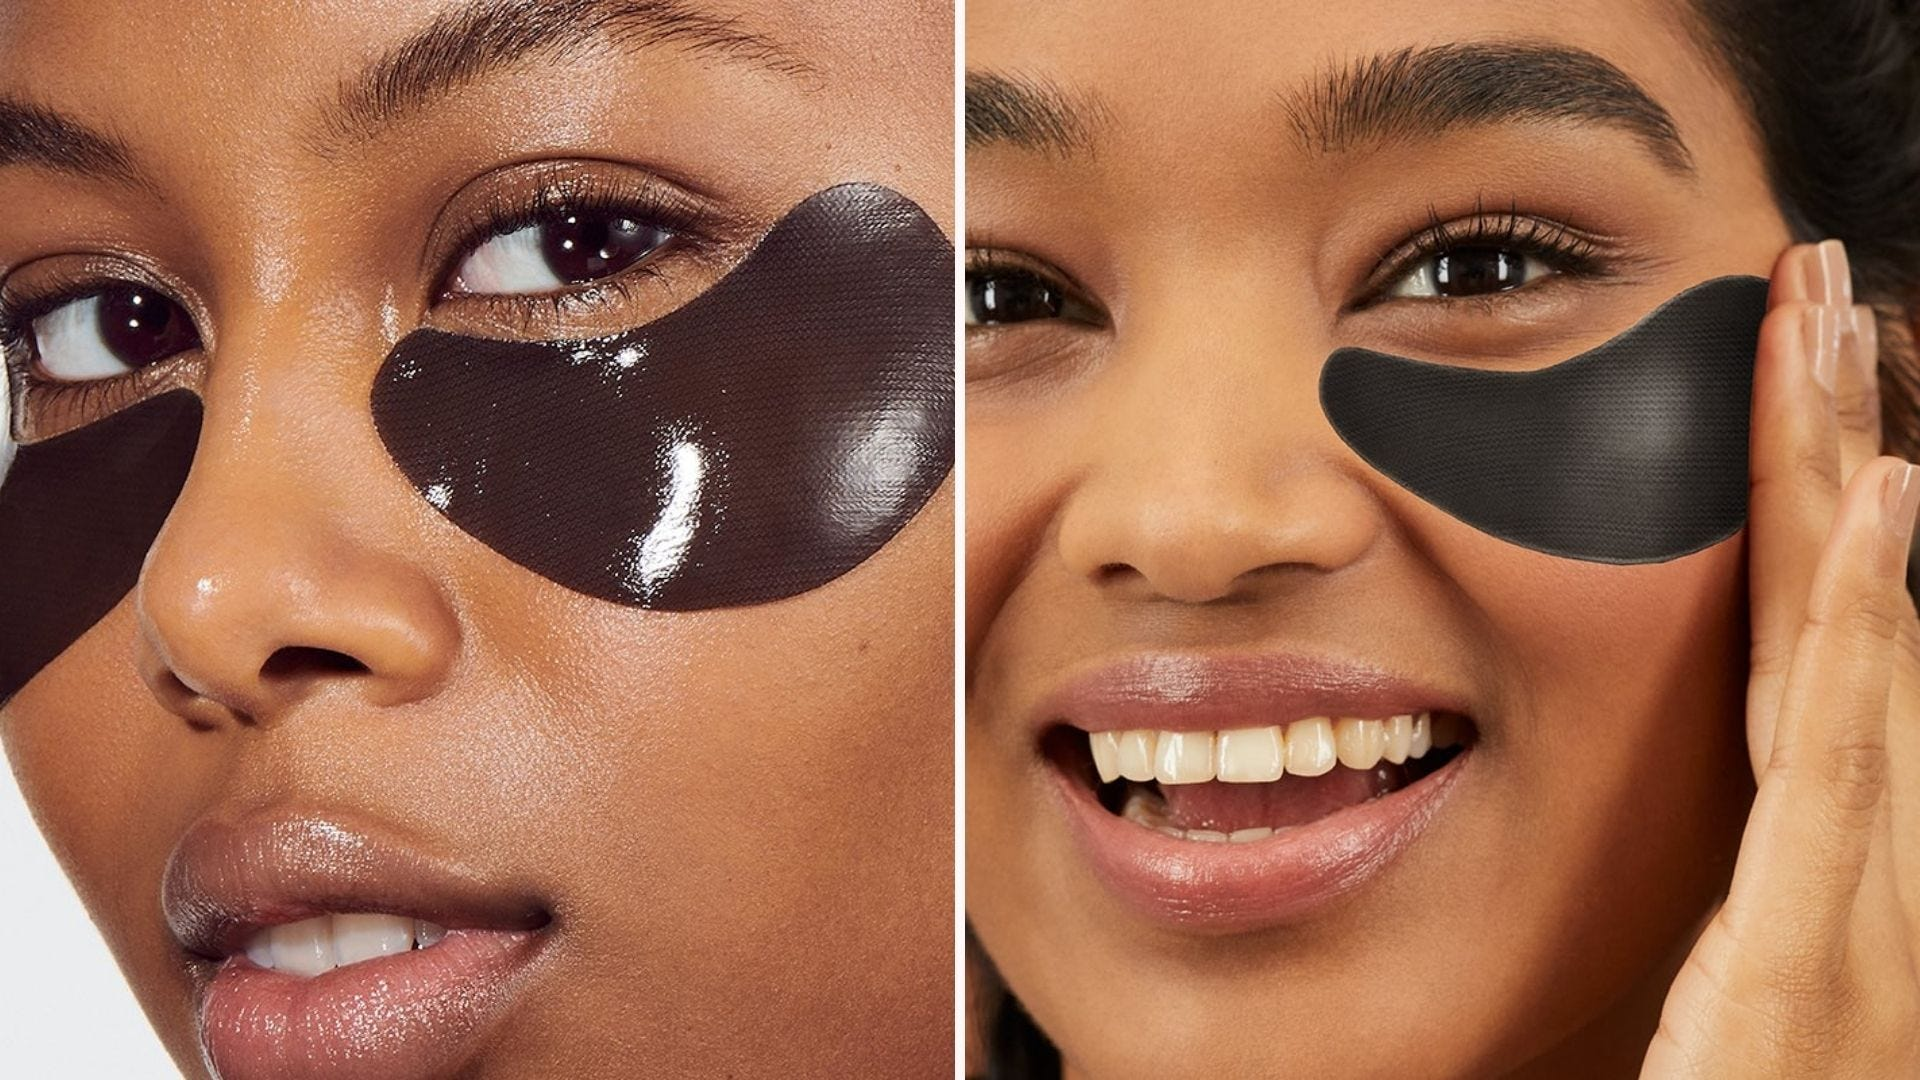 Two women with charcoal under eye masks on their faces